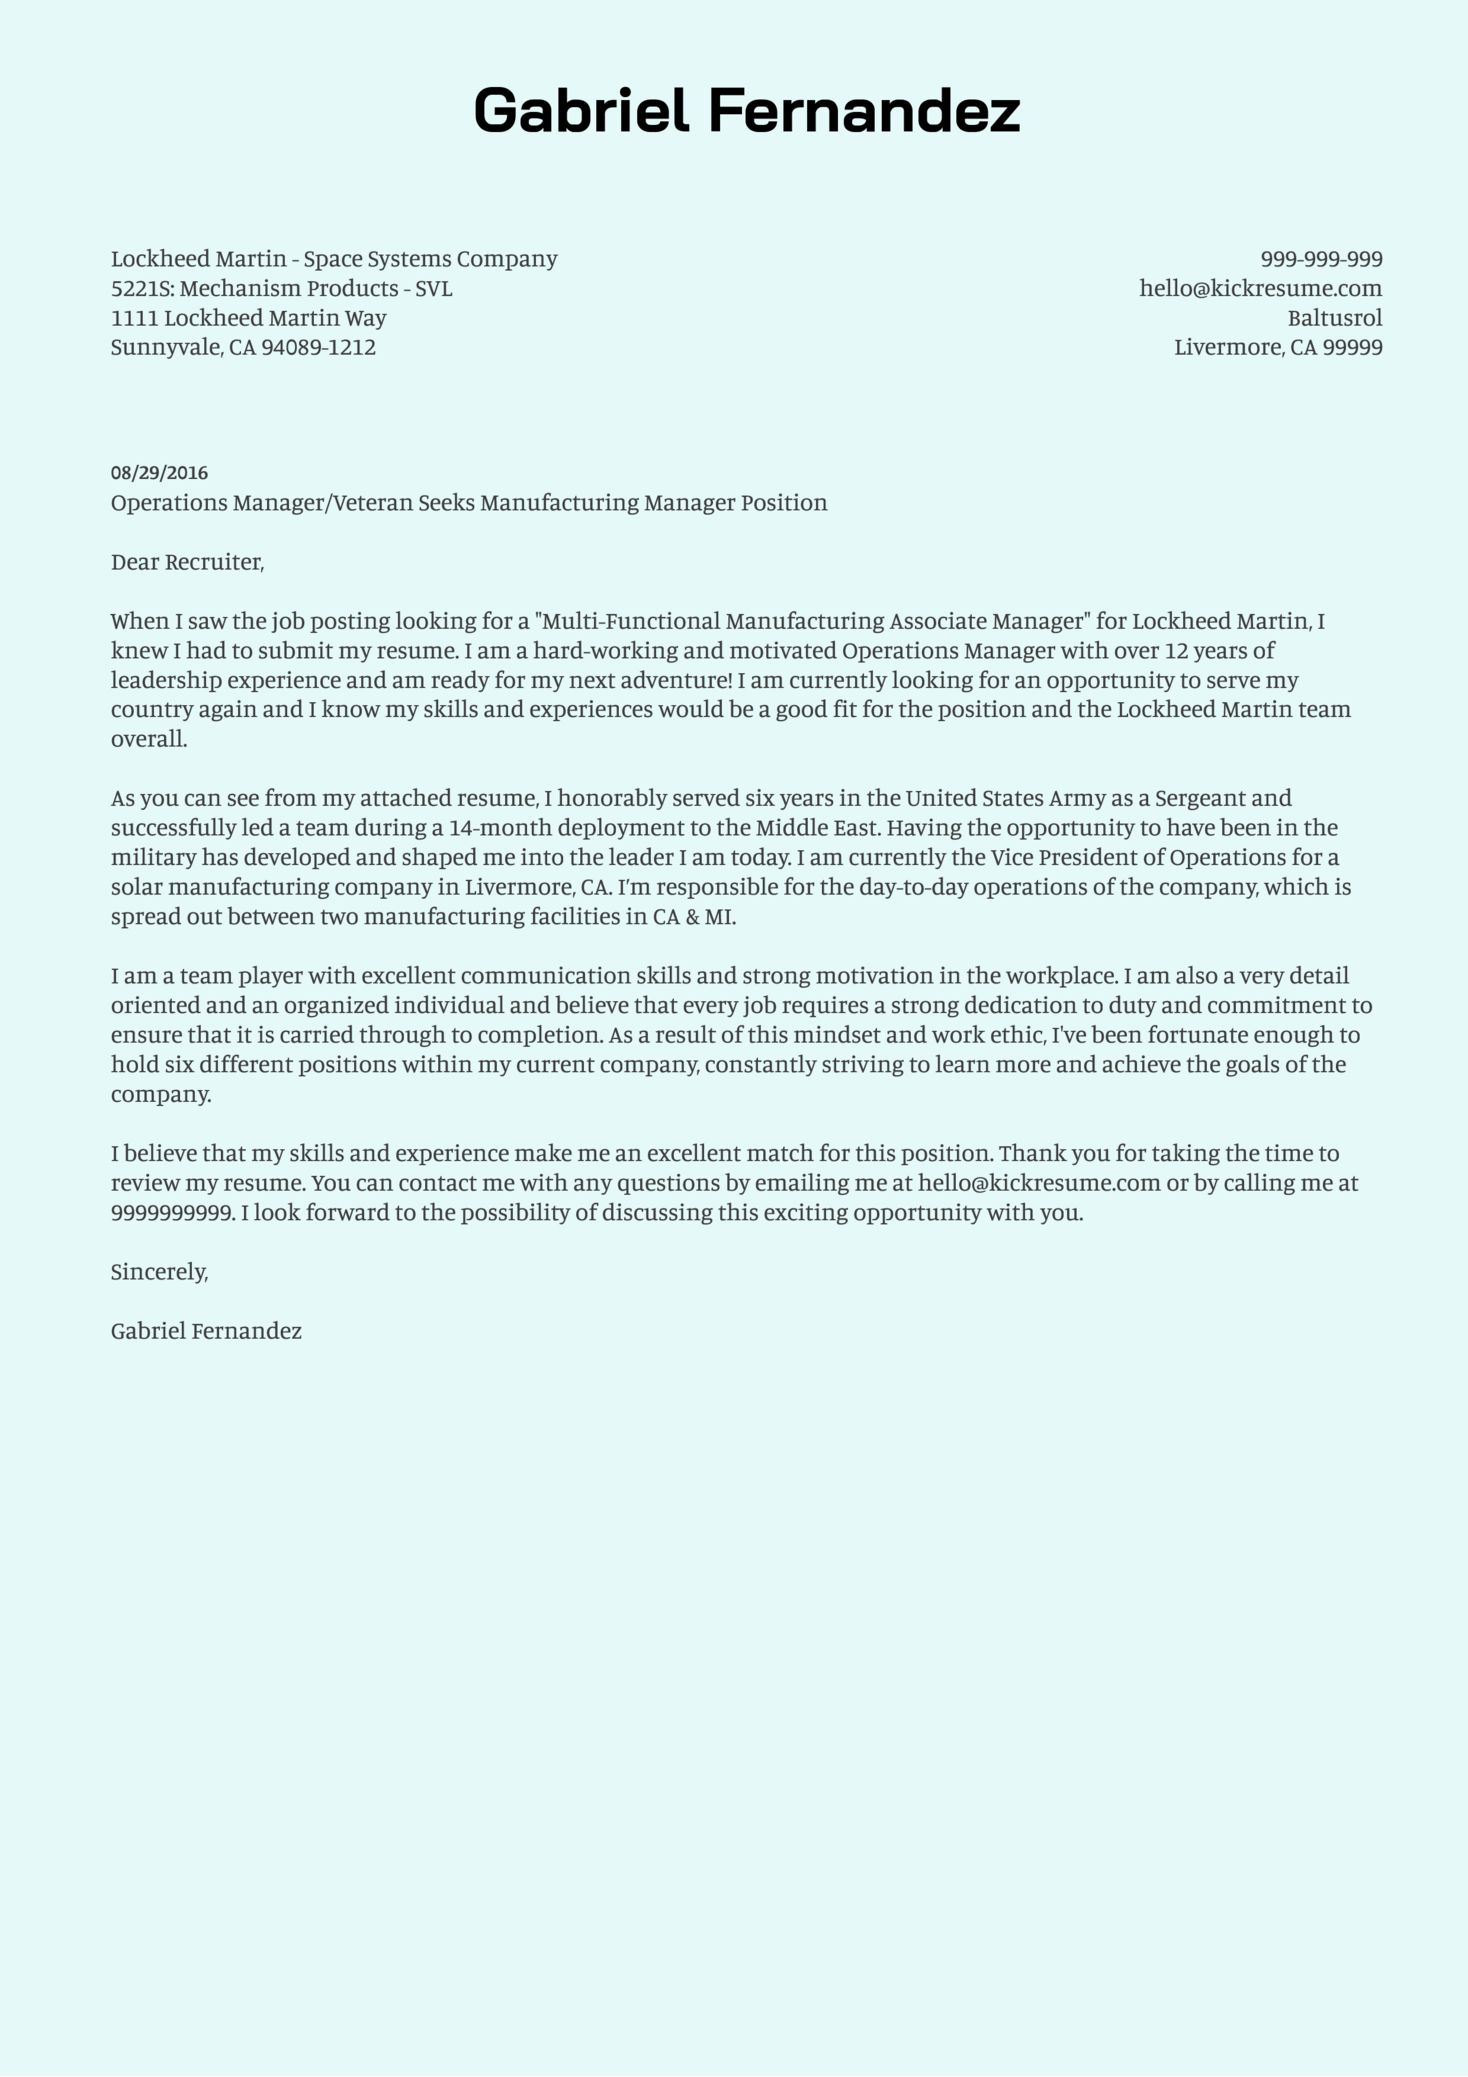 cover letter examples by real people  lockheed martin manufacturing manager cover letter